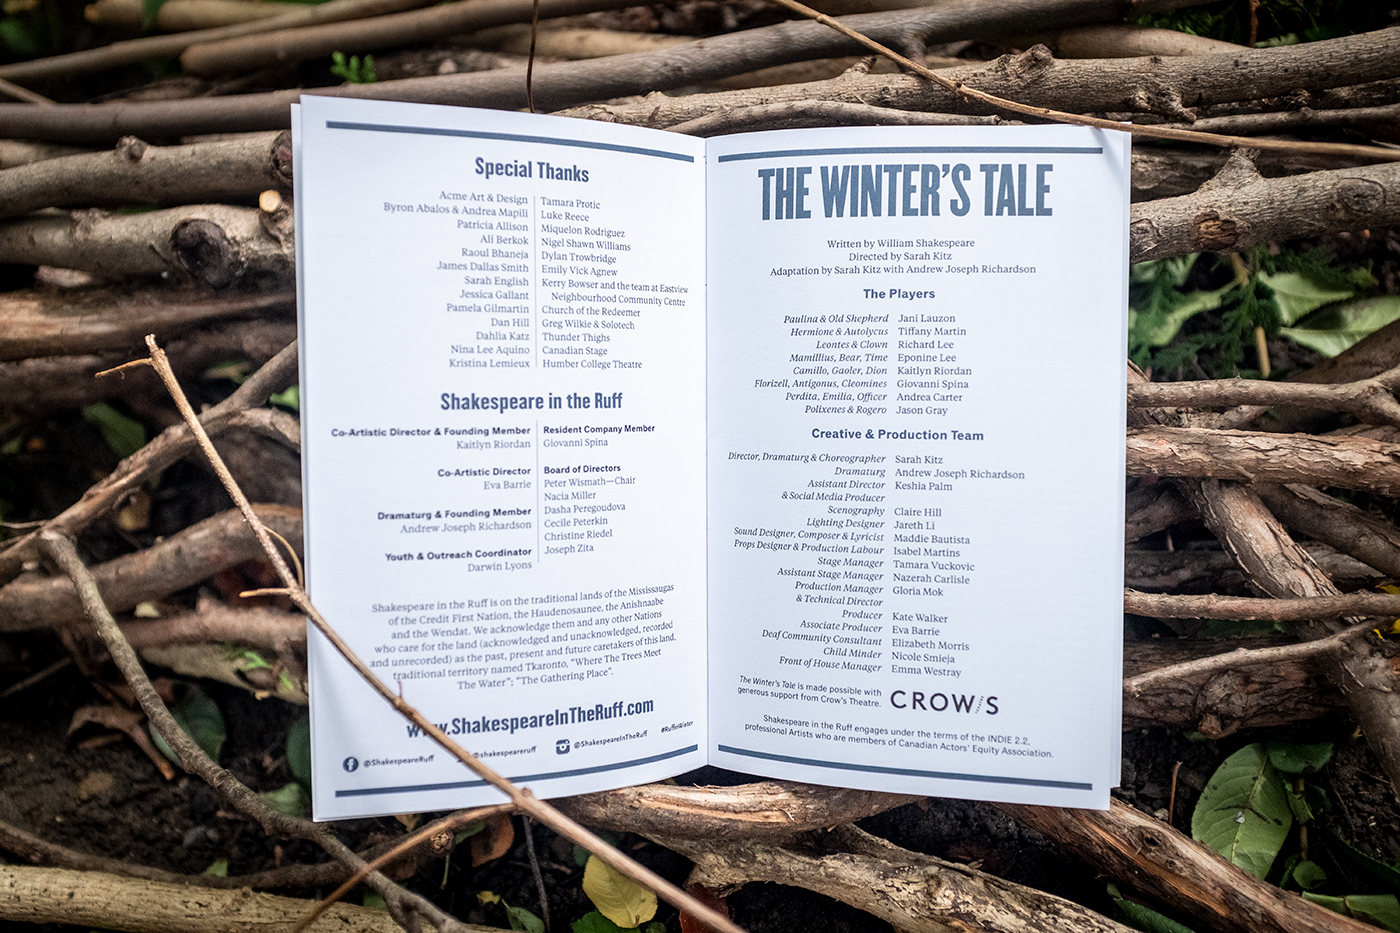 The program for the Winter's Tale lies open on a pile of branches